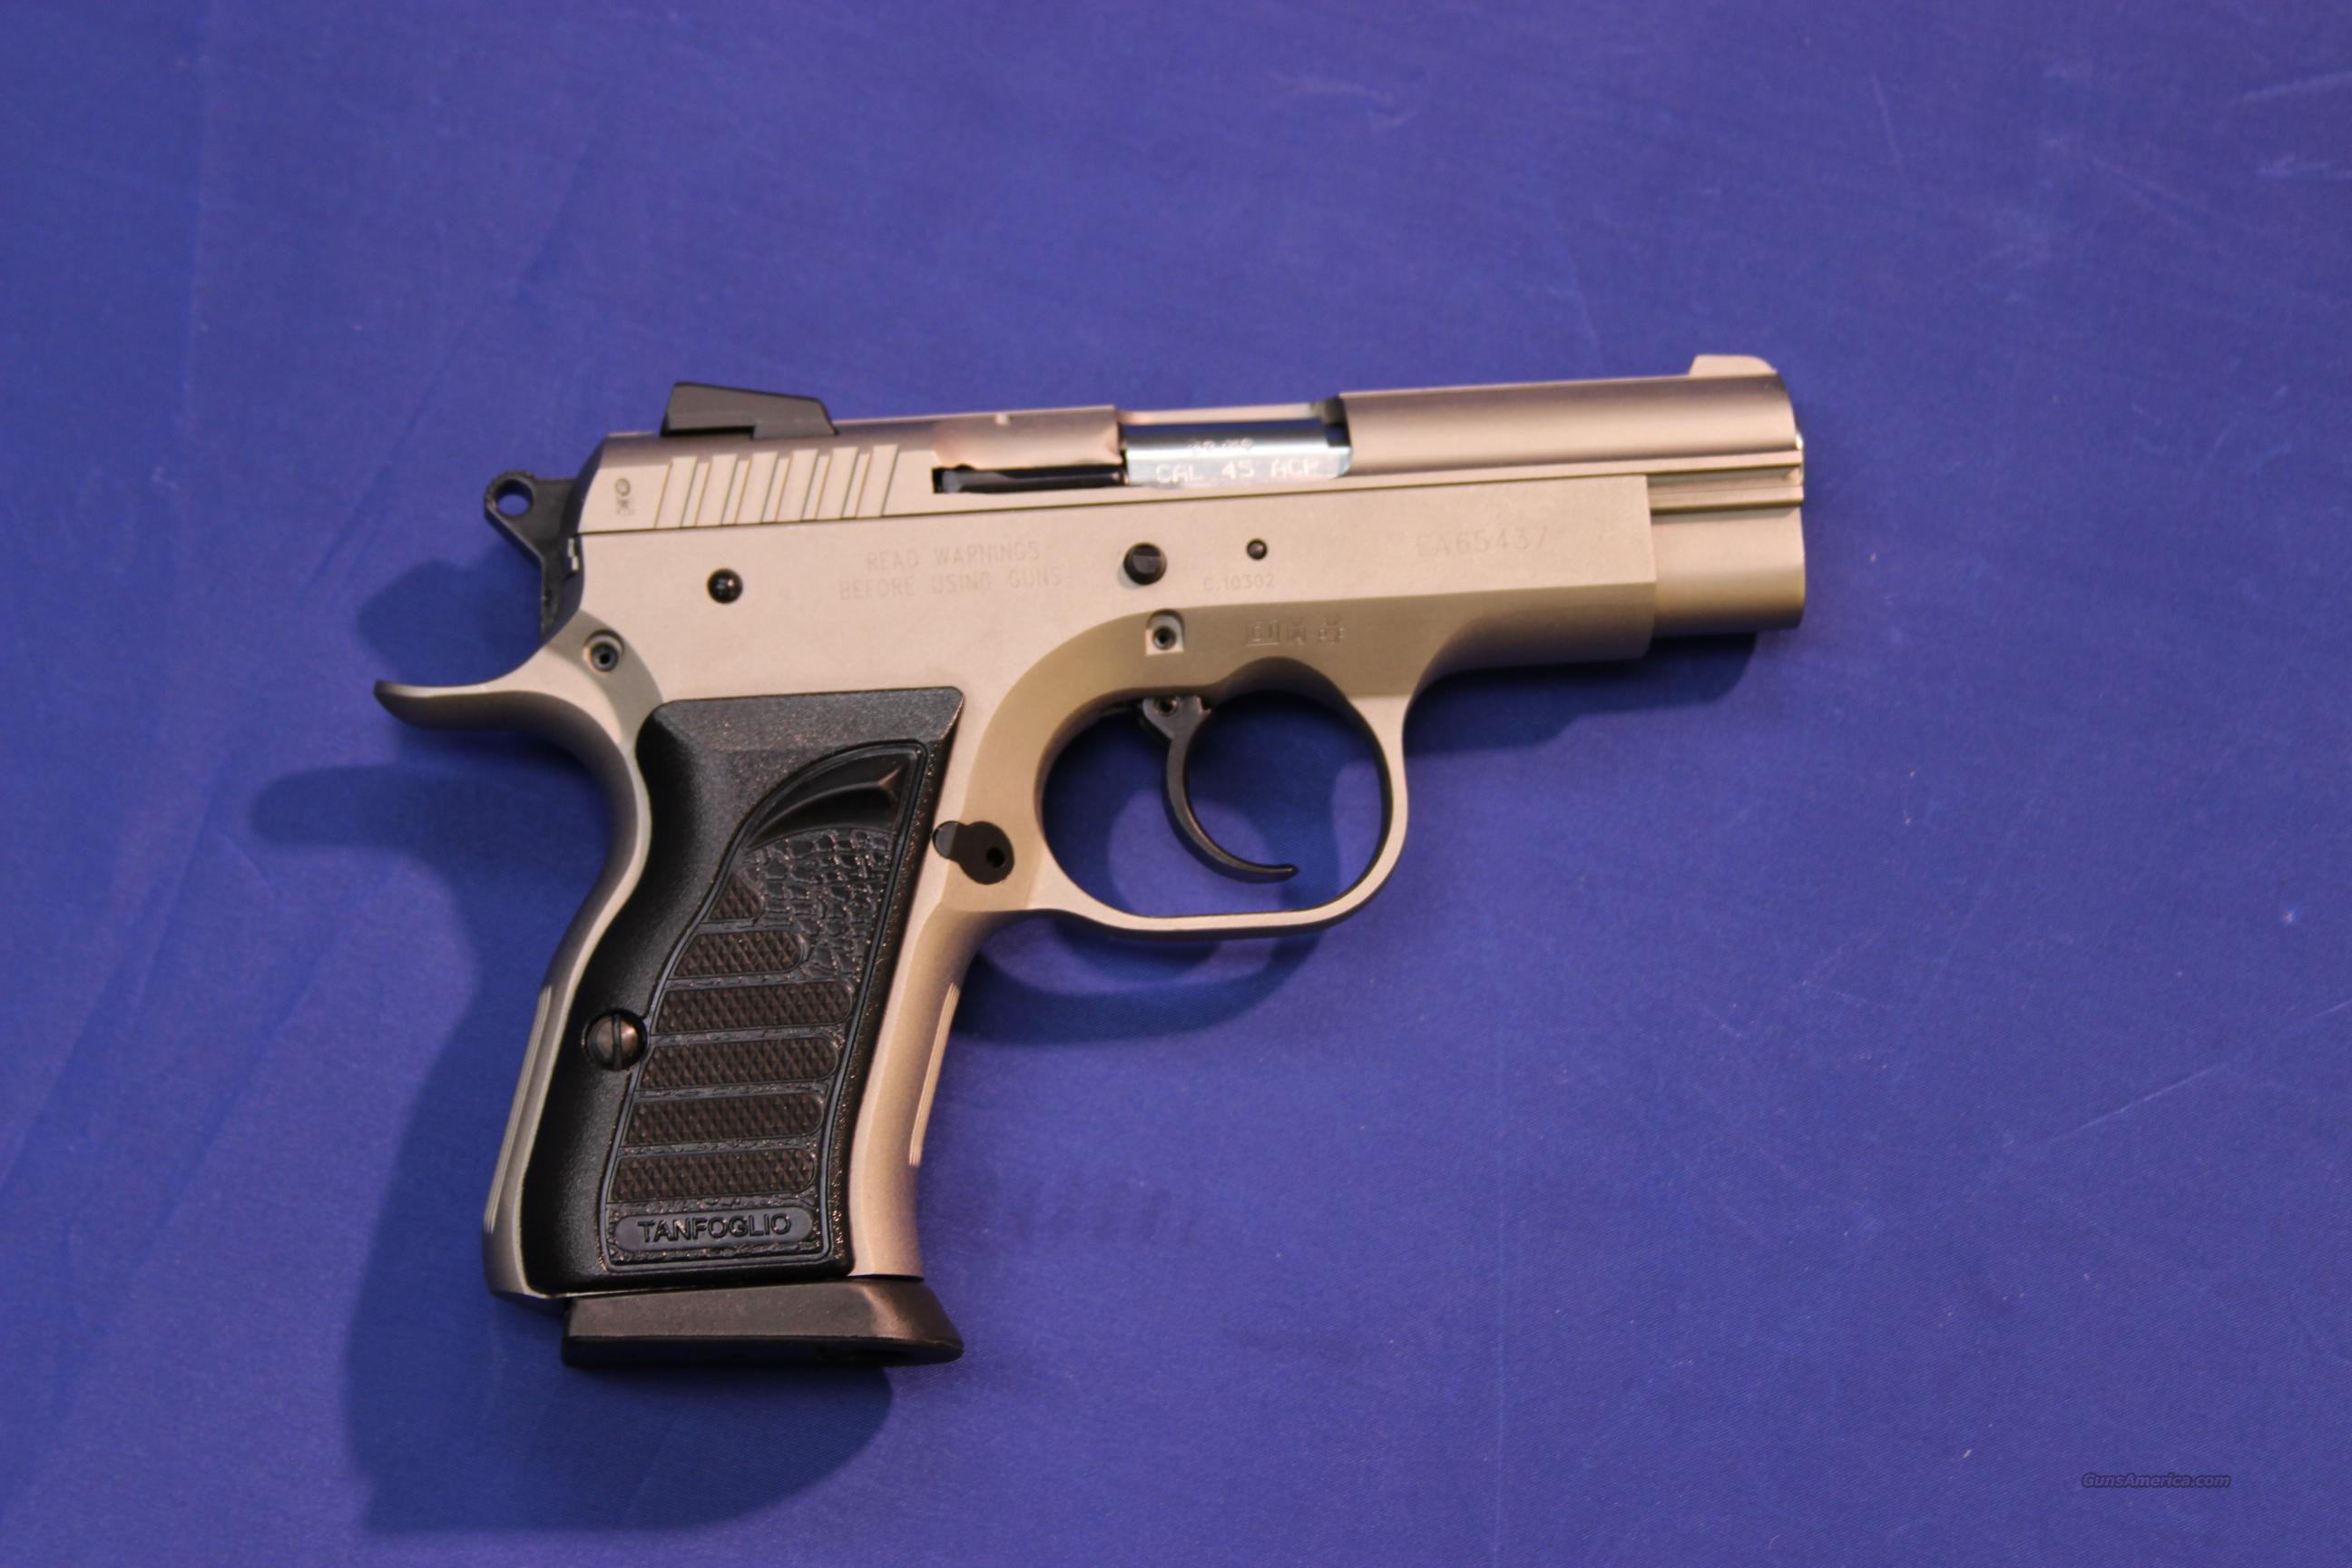 EAA WITNESS COMPACT .45 ACP w/ WONDER FINISH - NEW!  Guns > Pistols > EAA Pistols > Other